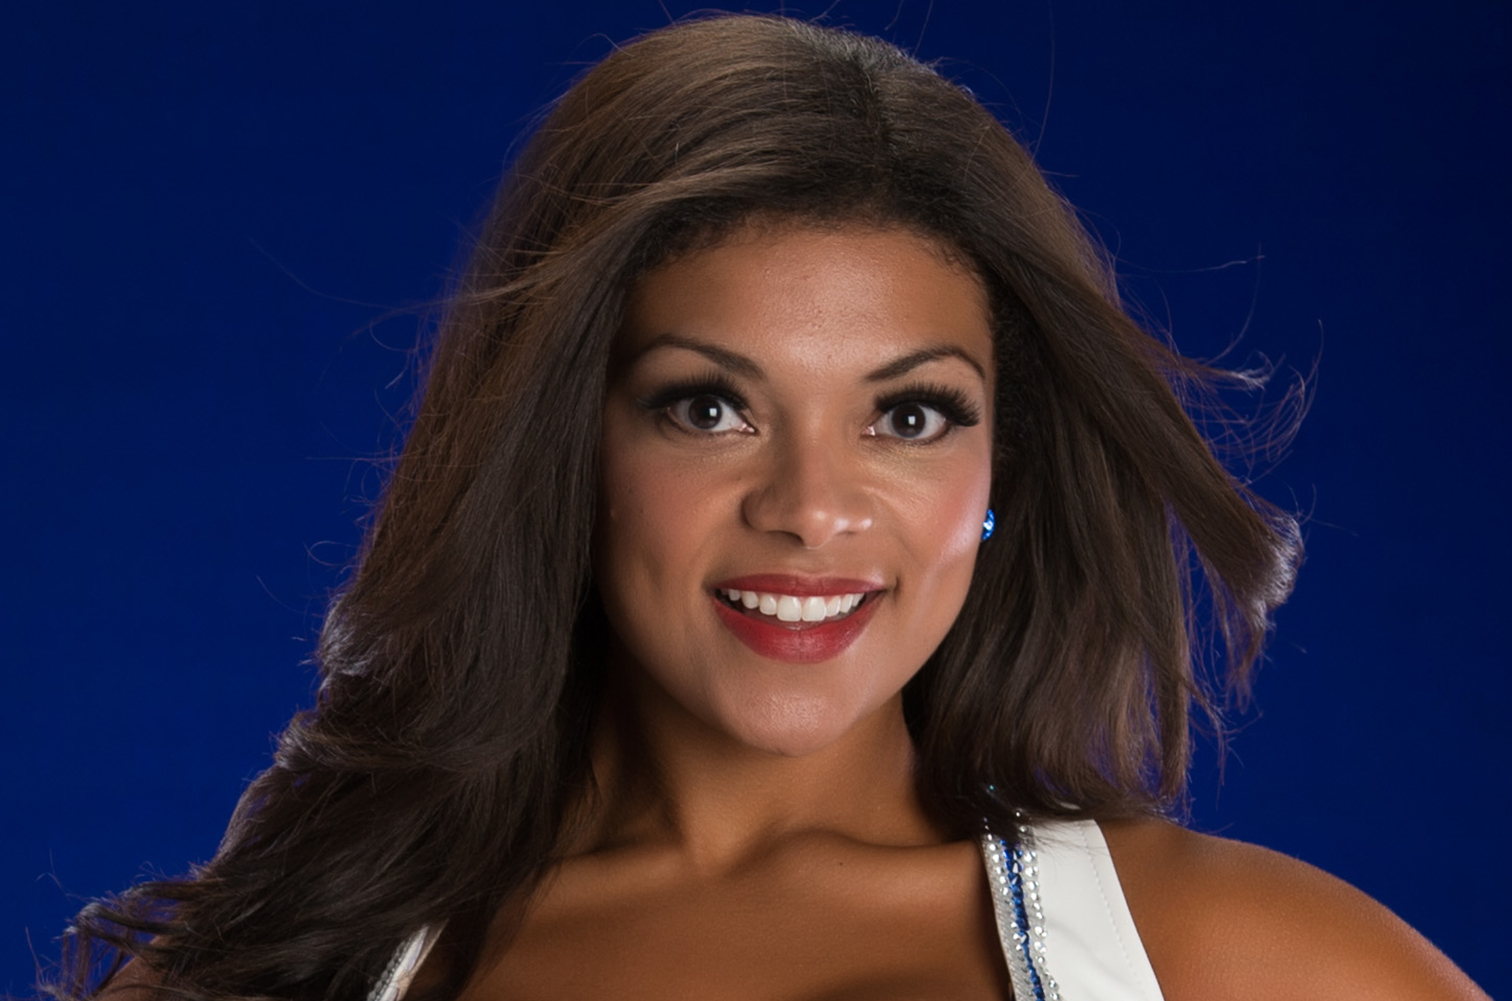 Science Cheerleaders on the NFL Indianapolis Colts and Denver Broncos